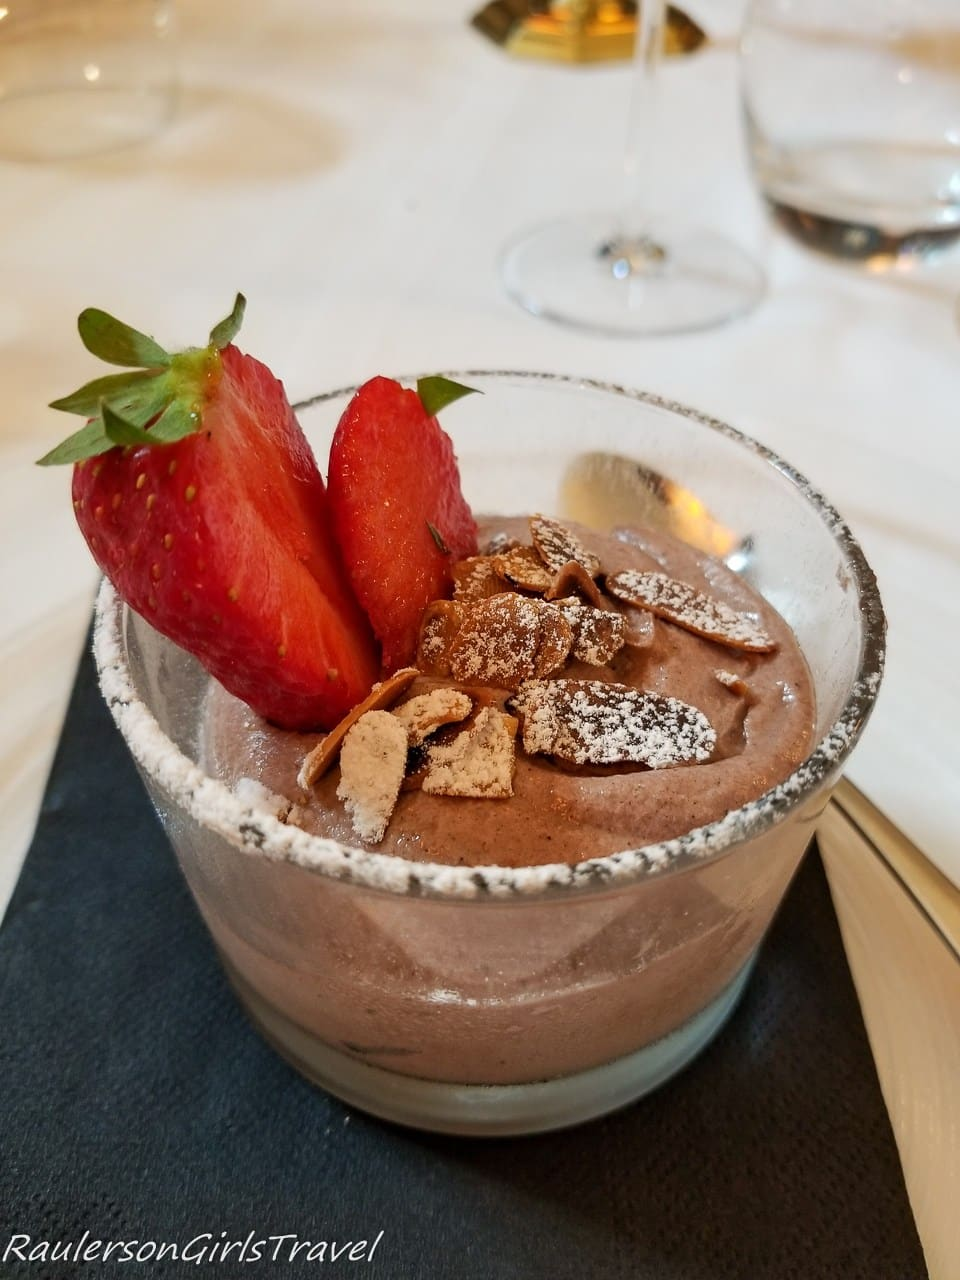 Chocolate mousse served with strawberries and almond crumble